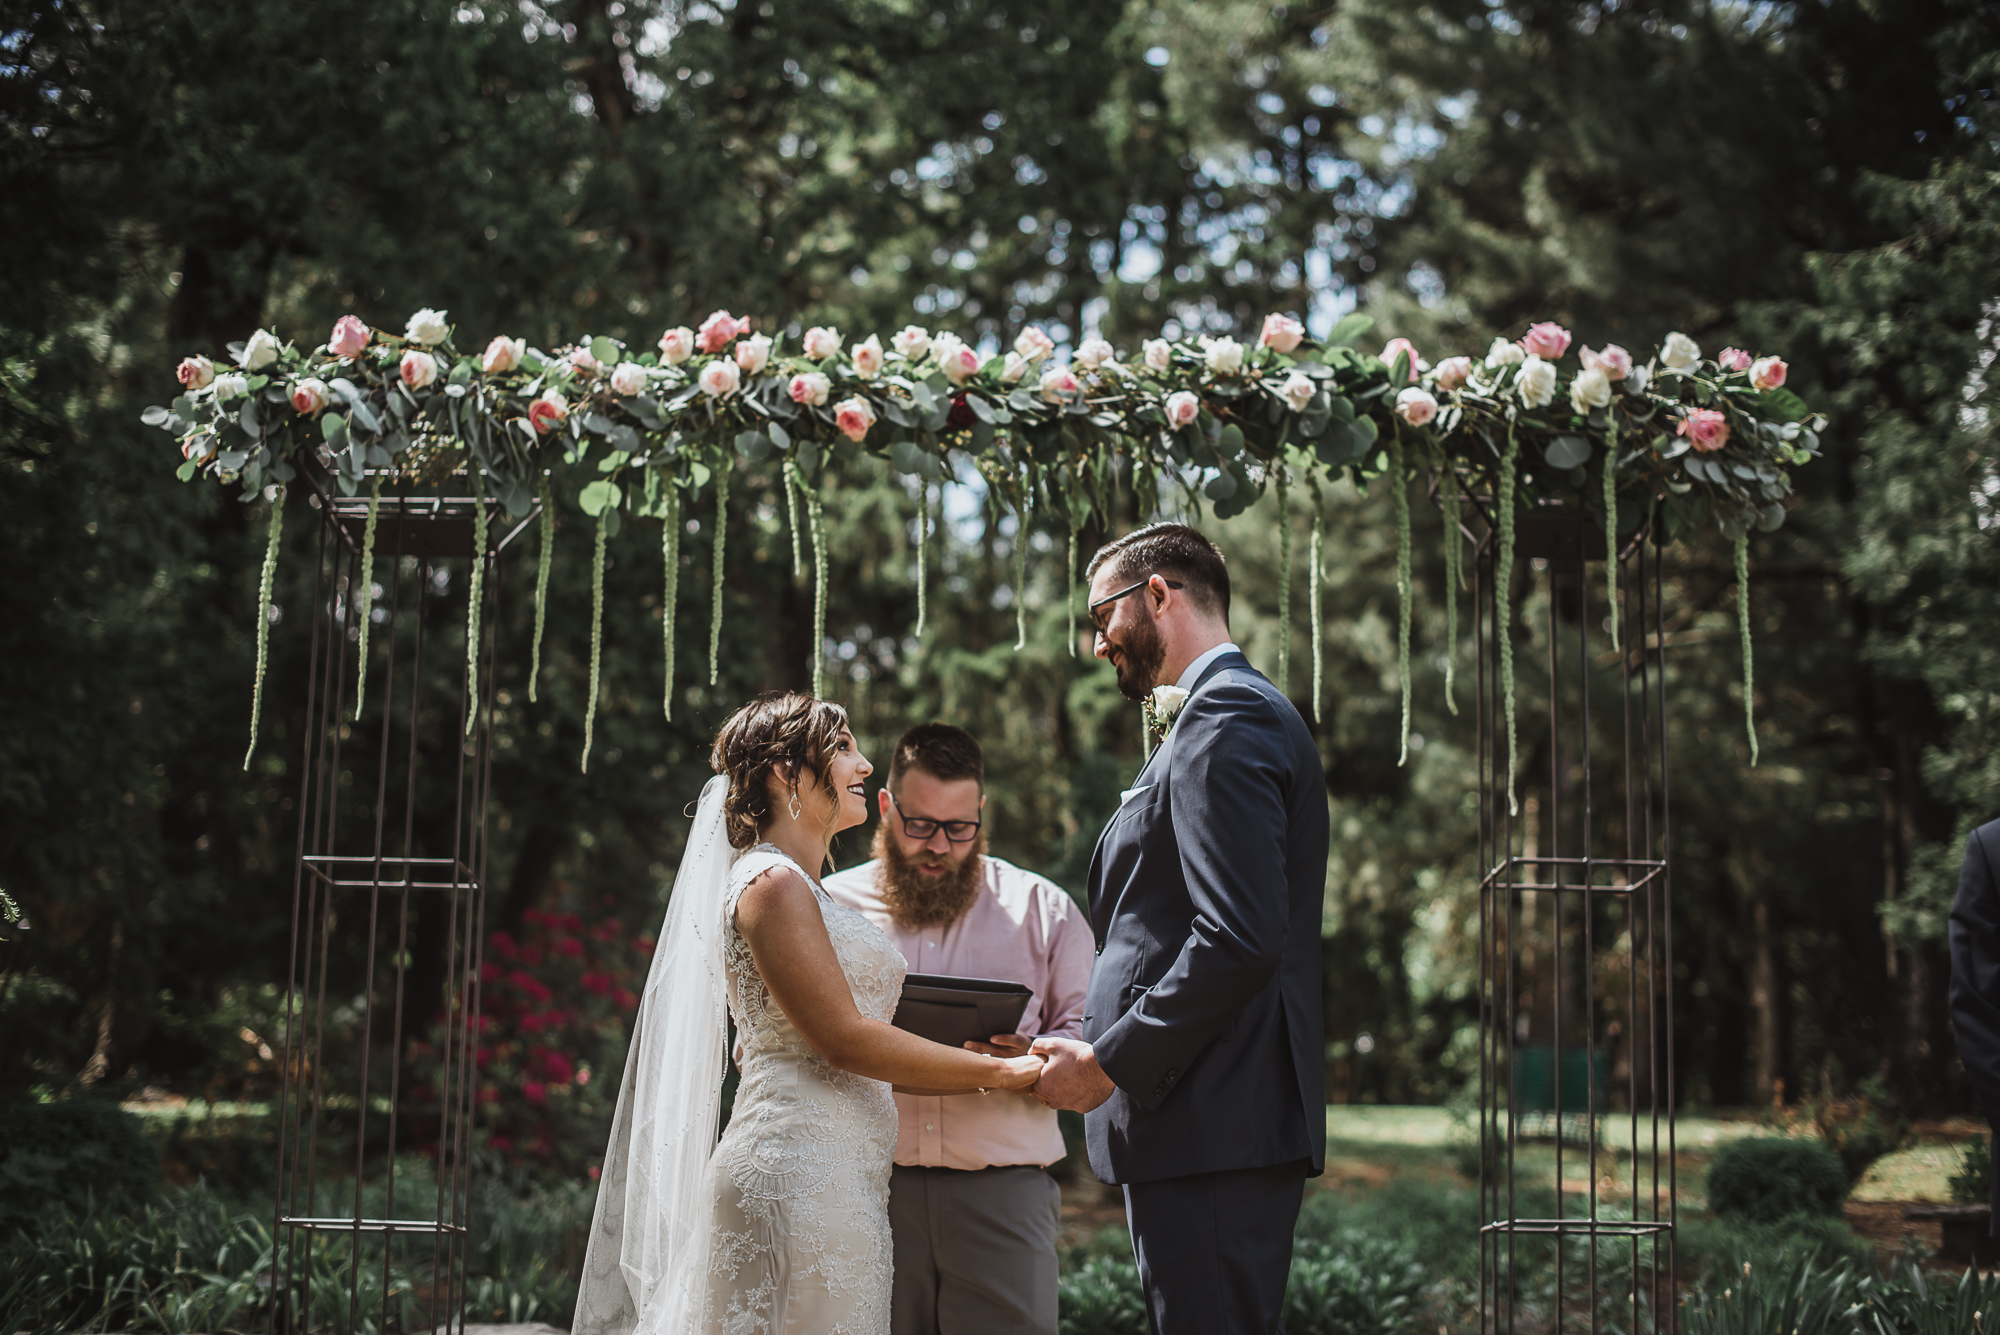 Melissa Cervantes Photography _ Kelsey + Ben Junebug Weddings Submission-57.jpg